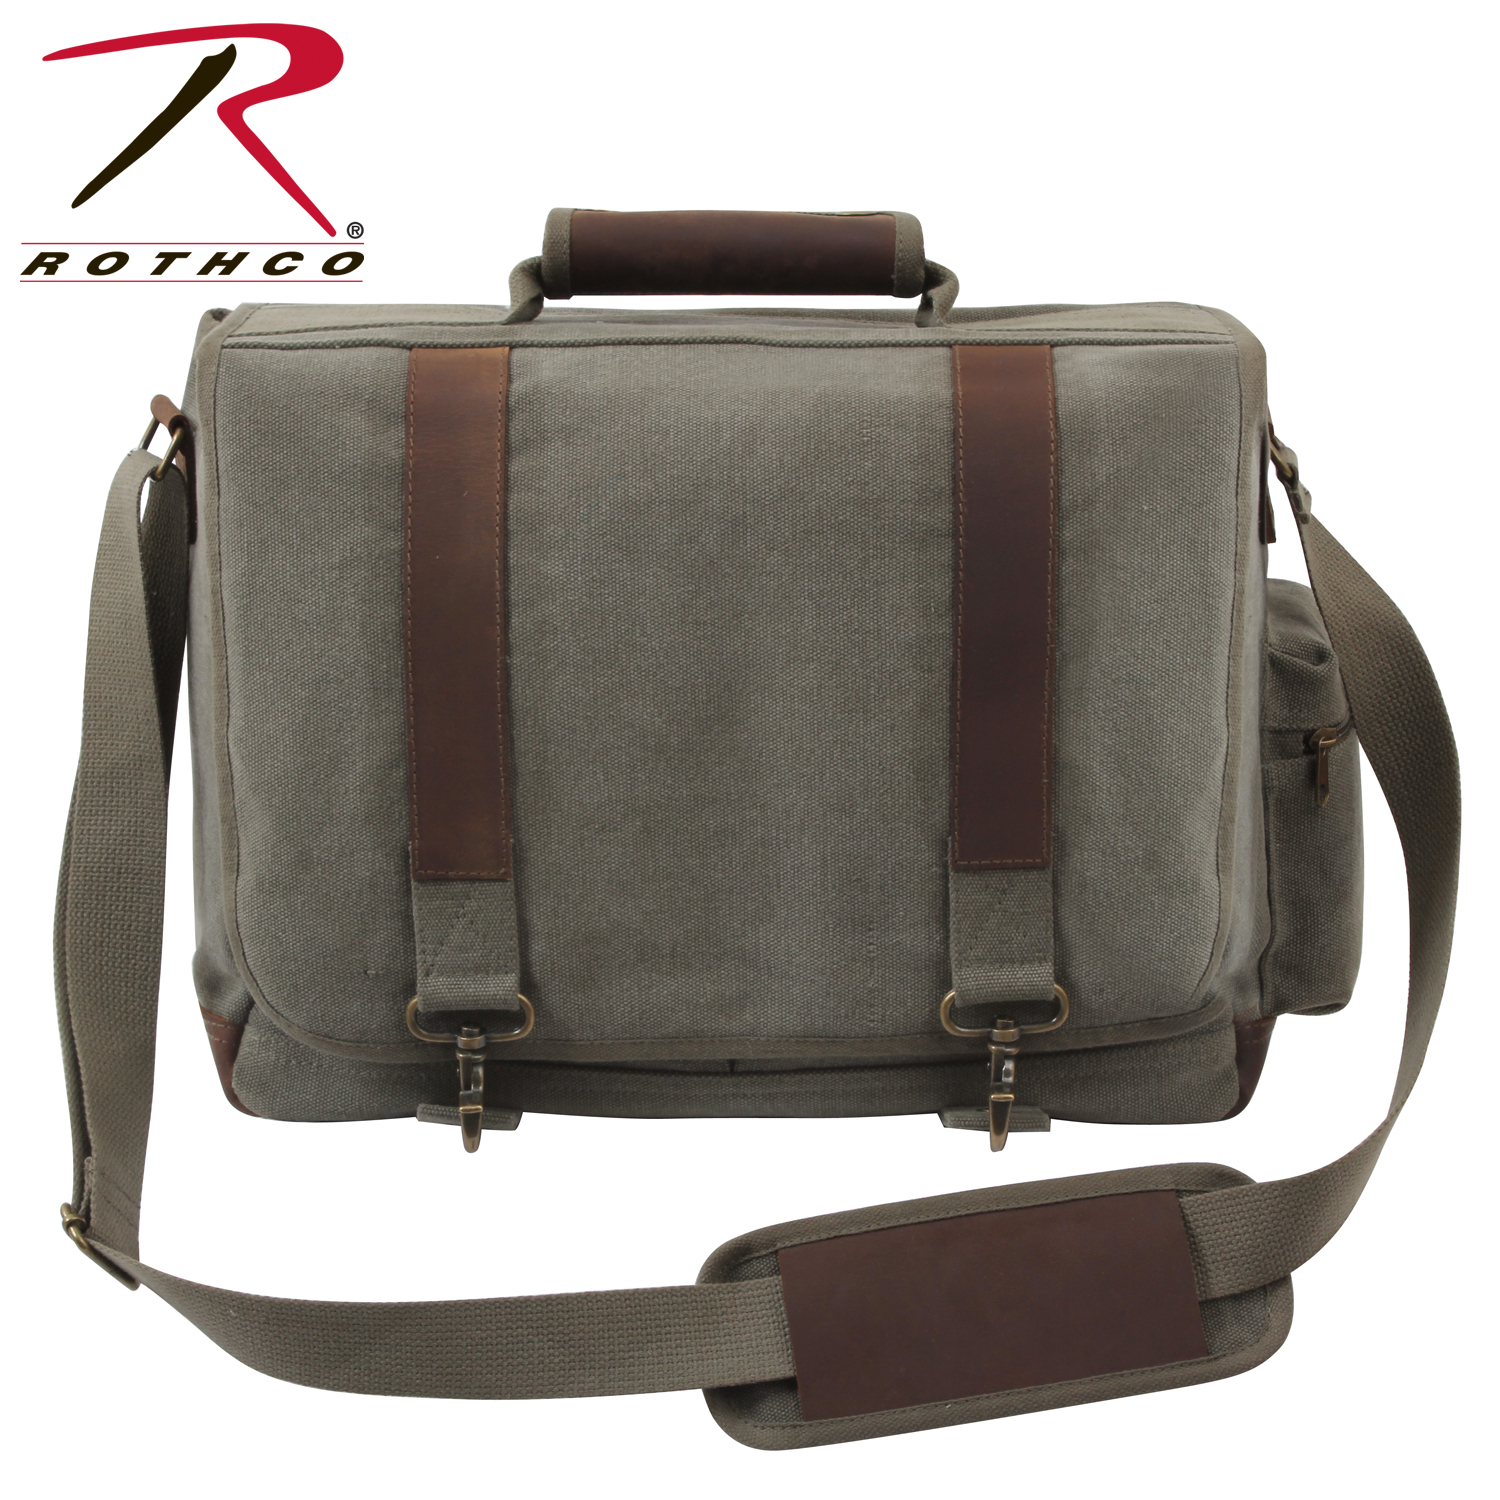 f95e30625bcf Rothco Vintage Canvas Pathfinder Laptop Bag With Leather Accents